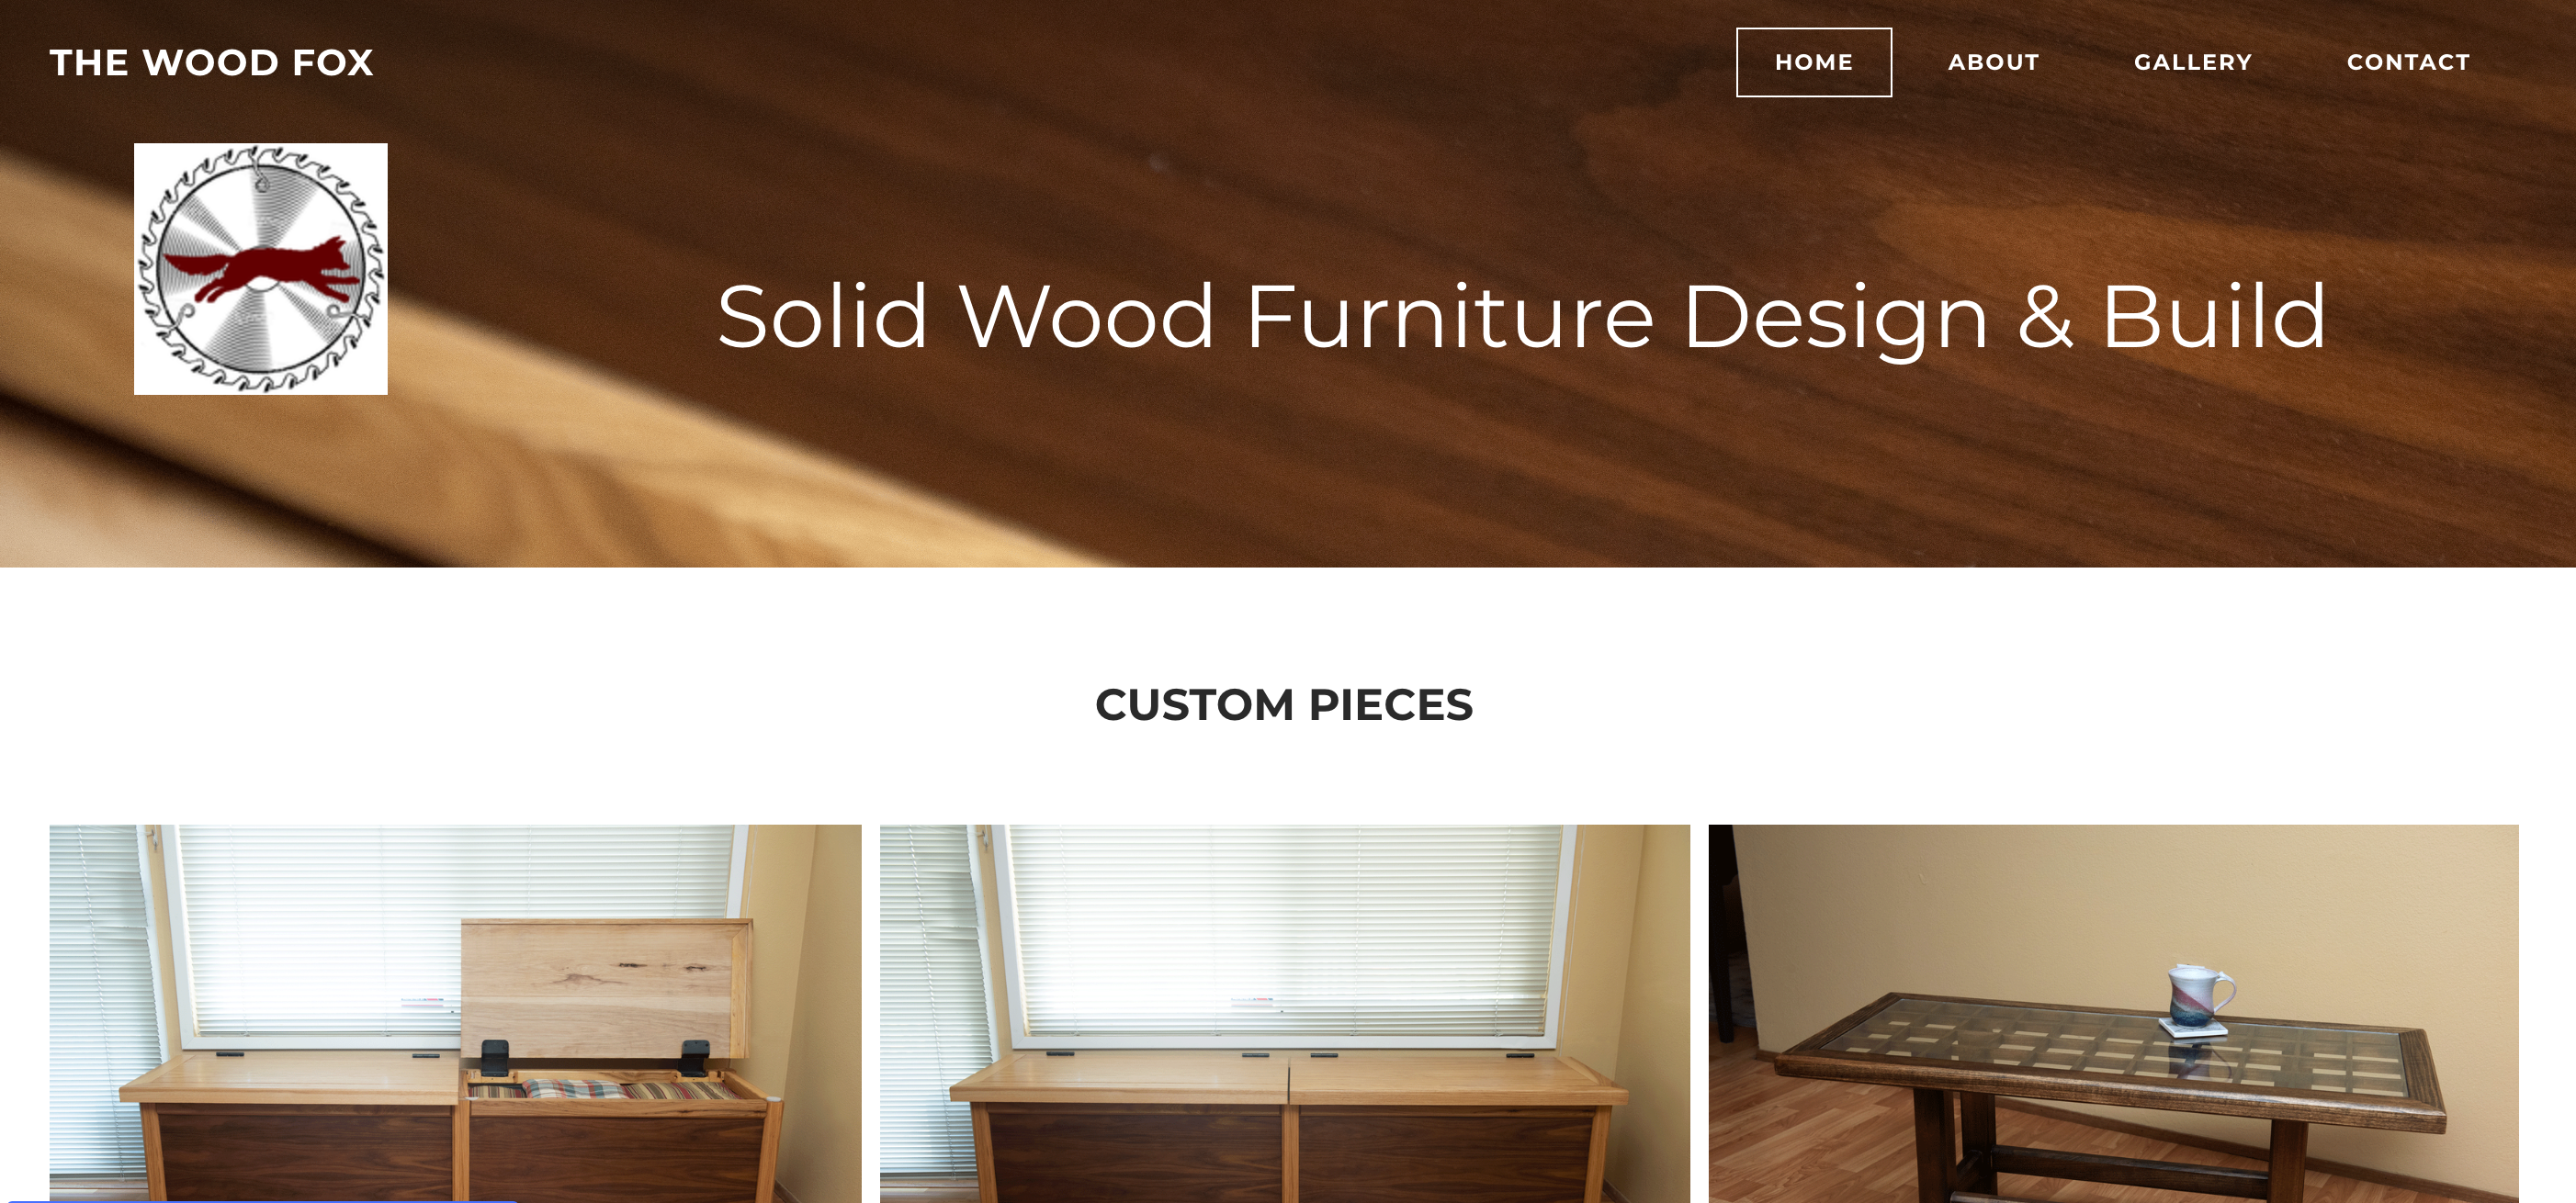 Website for the Wood Fox